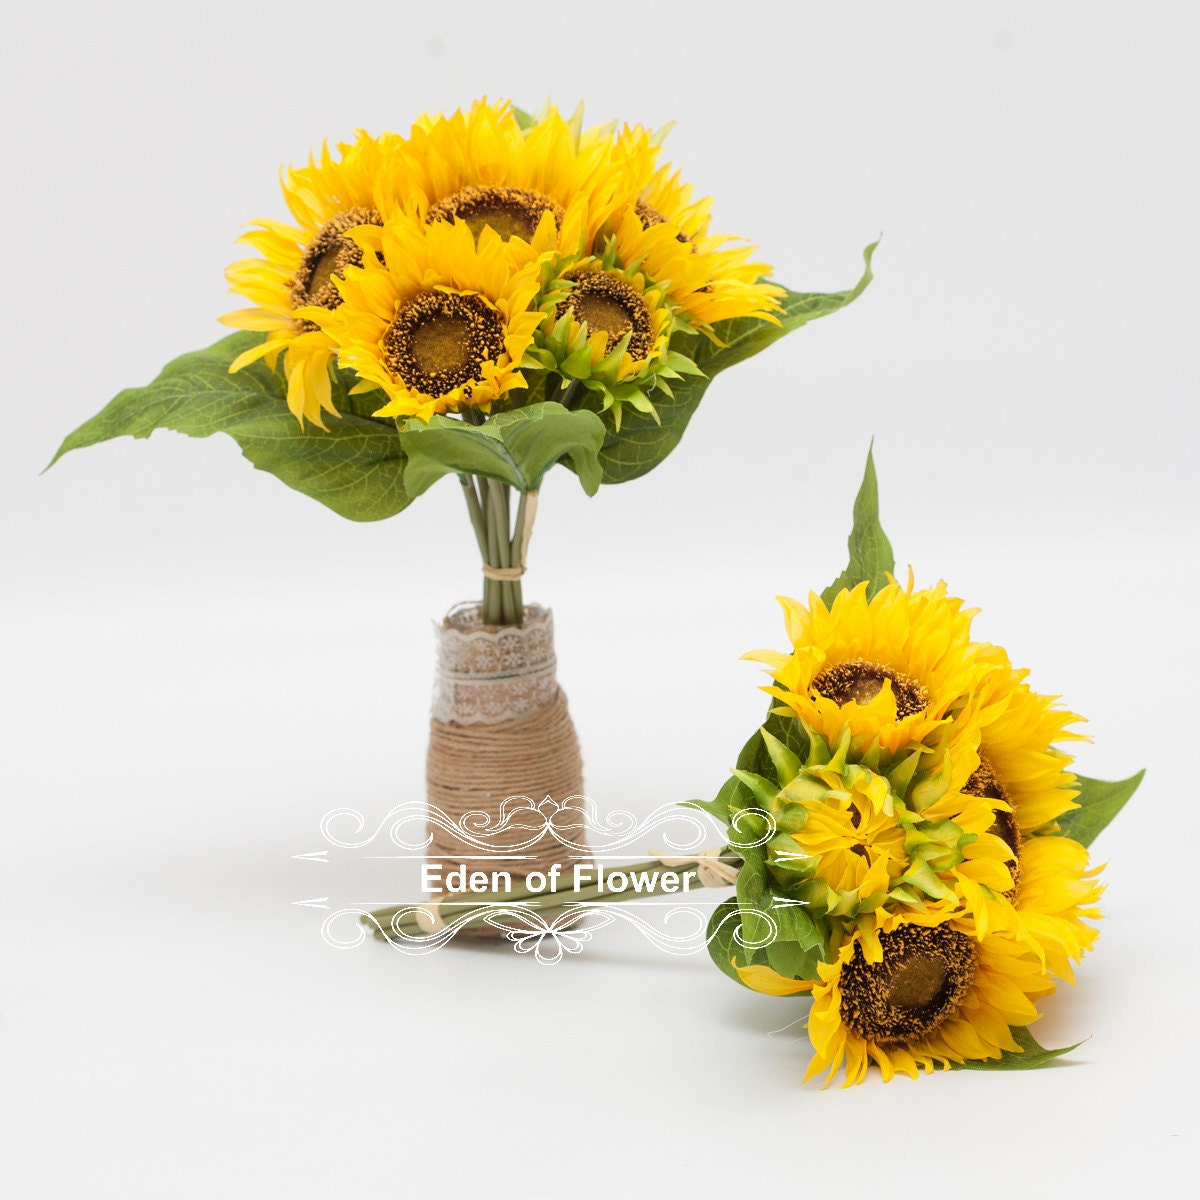 7 Pcs Silk Sunflowers Bouquet for Wedding Centerpieces, Bridal ...